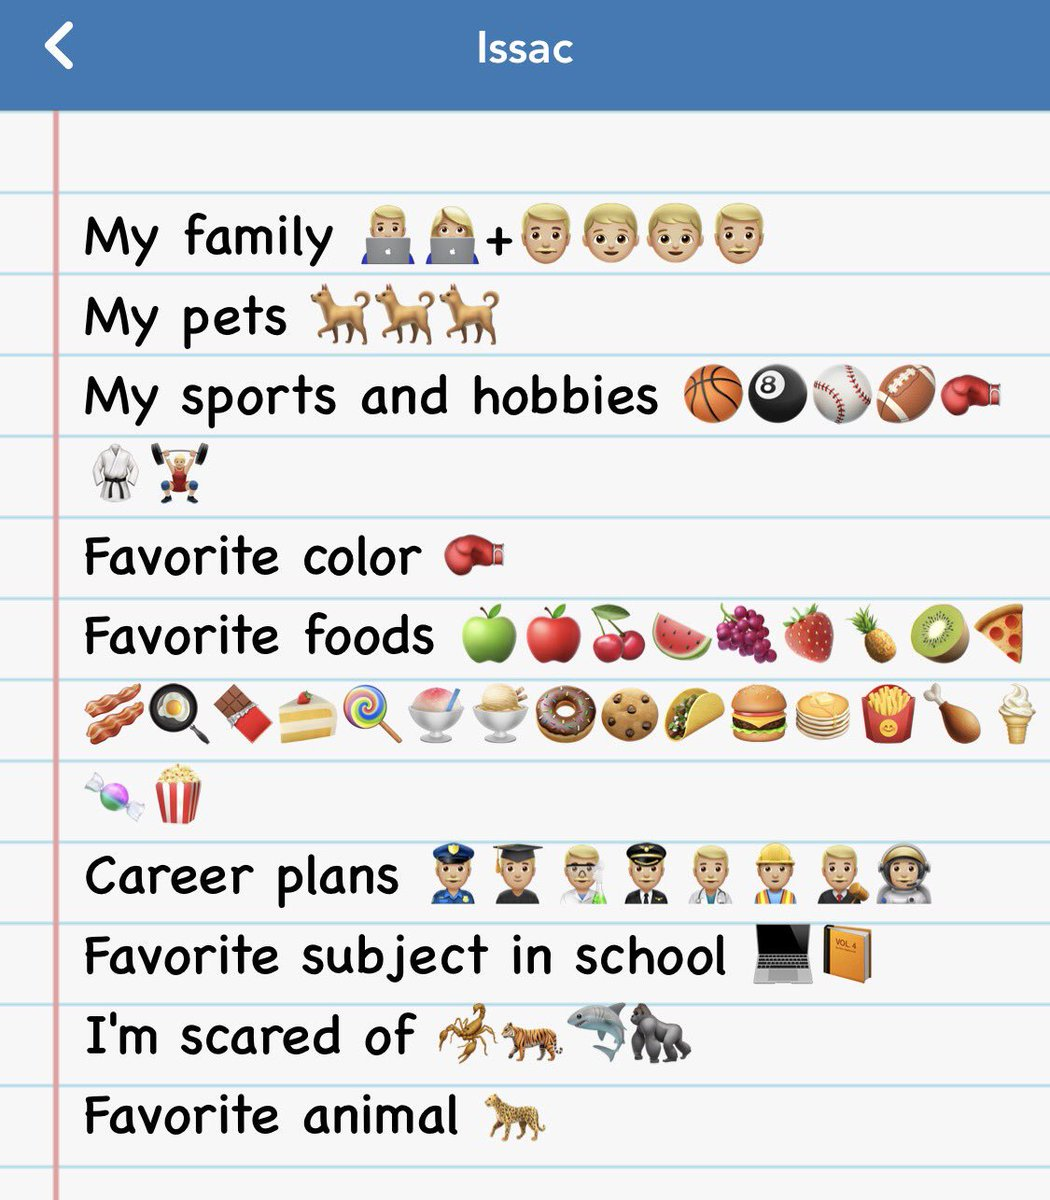 Some of our emoji bios made in @Seesaw today!  #turner202strong #edtech <br>http://pic.twitter.com/uezYeiy5mu